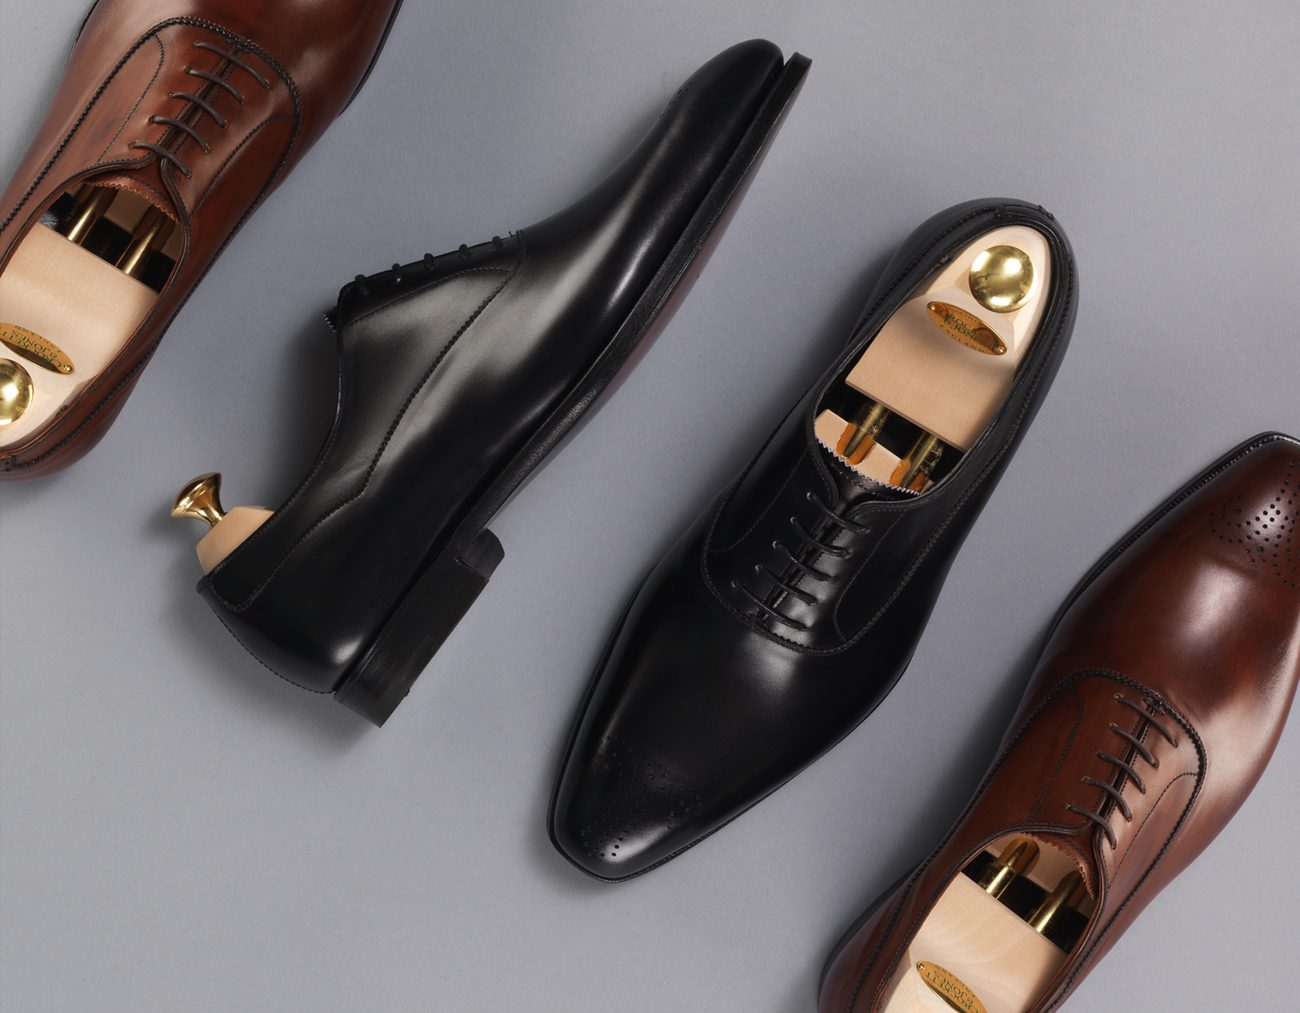 Crockett & Jones Case Study